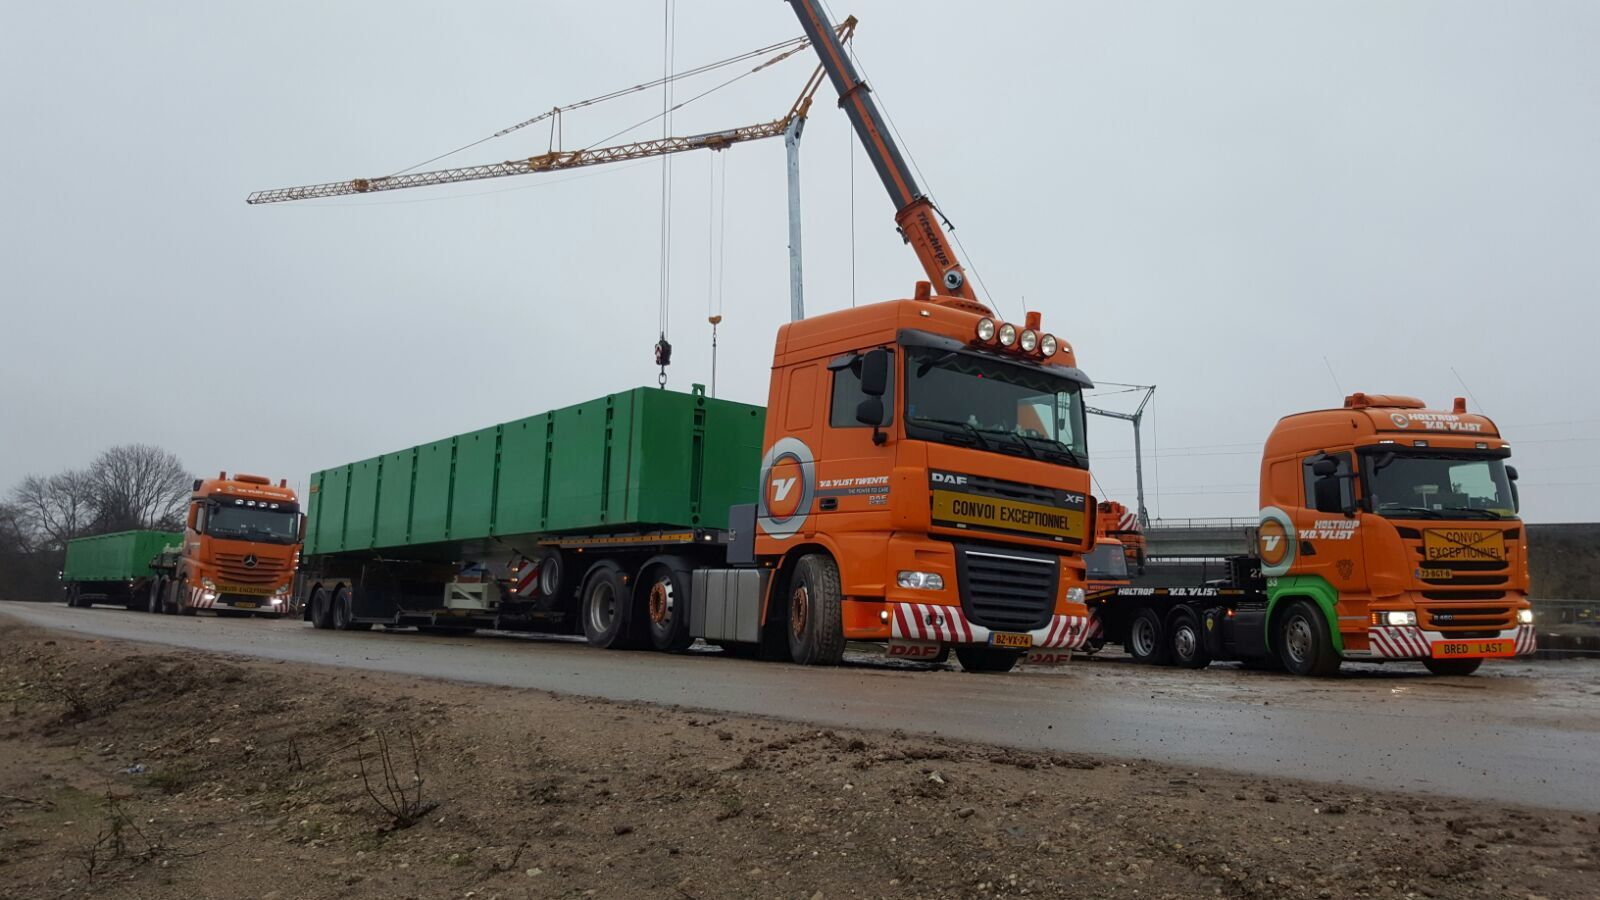 Combifloat modular modules loaded on truck